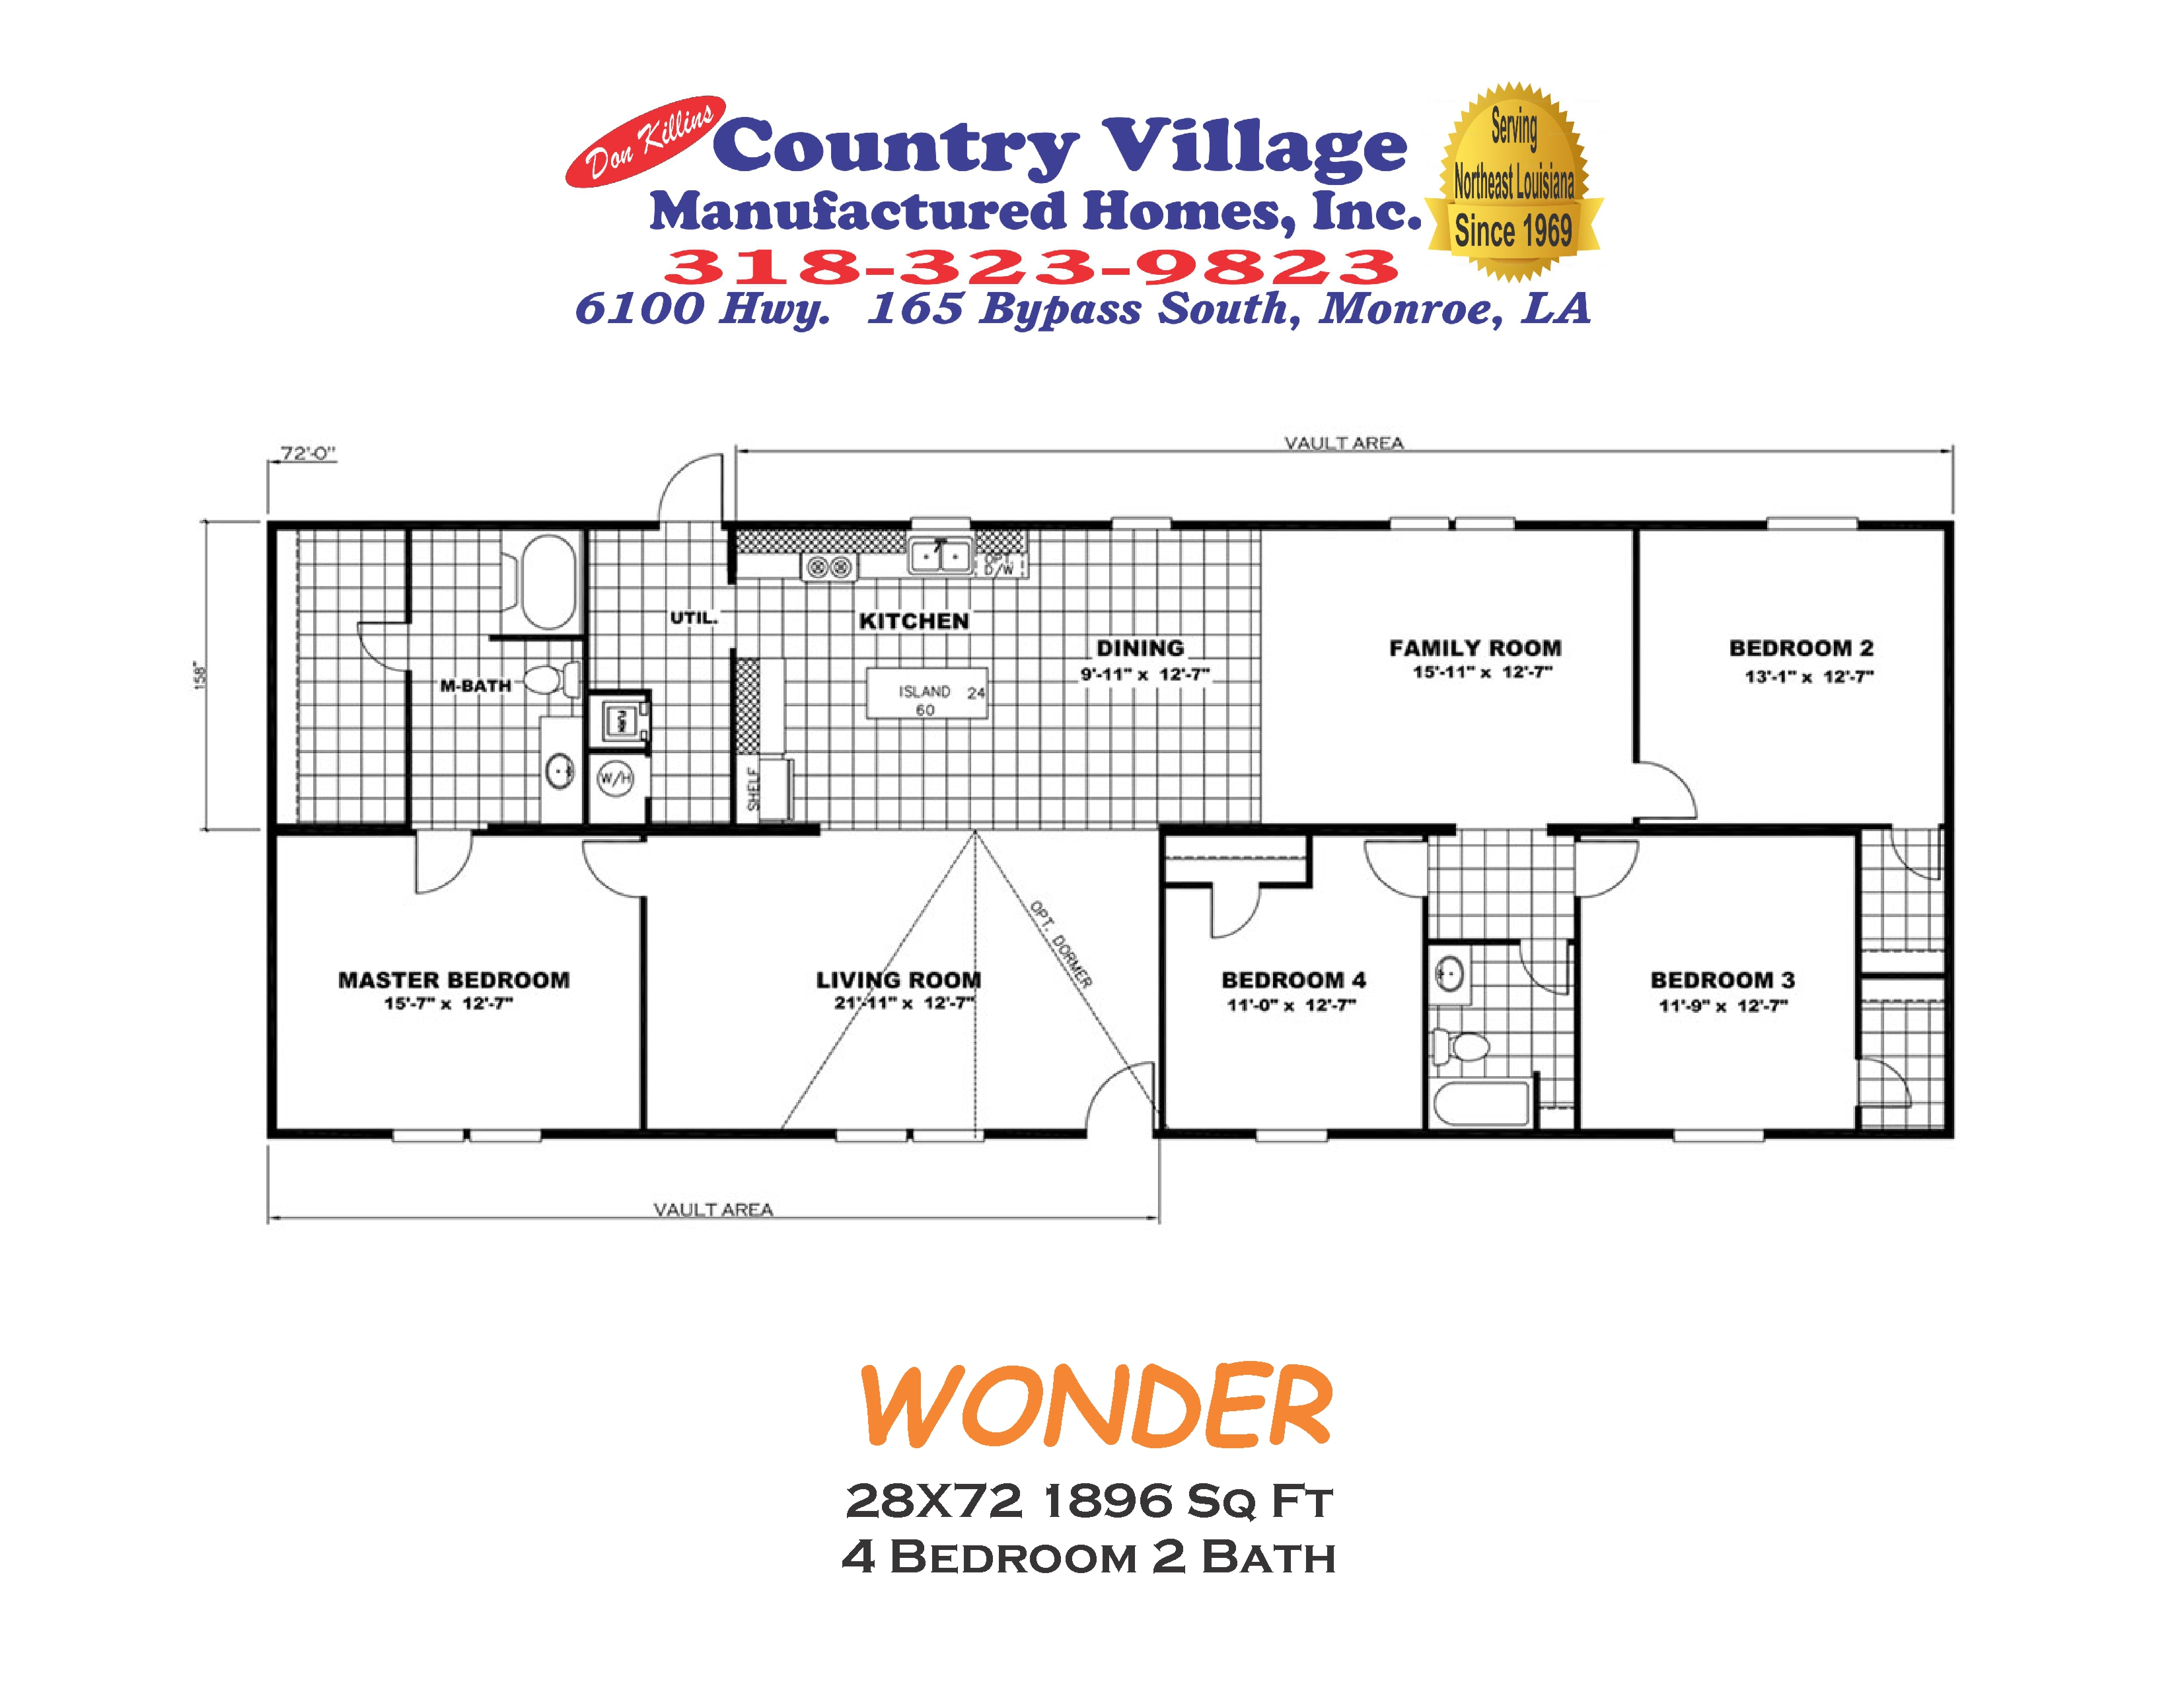 WONDER 28X72 1896 sq ft 4+2